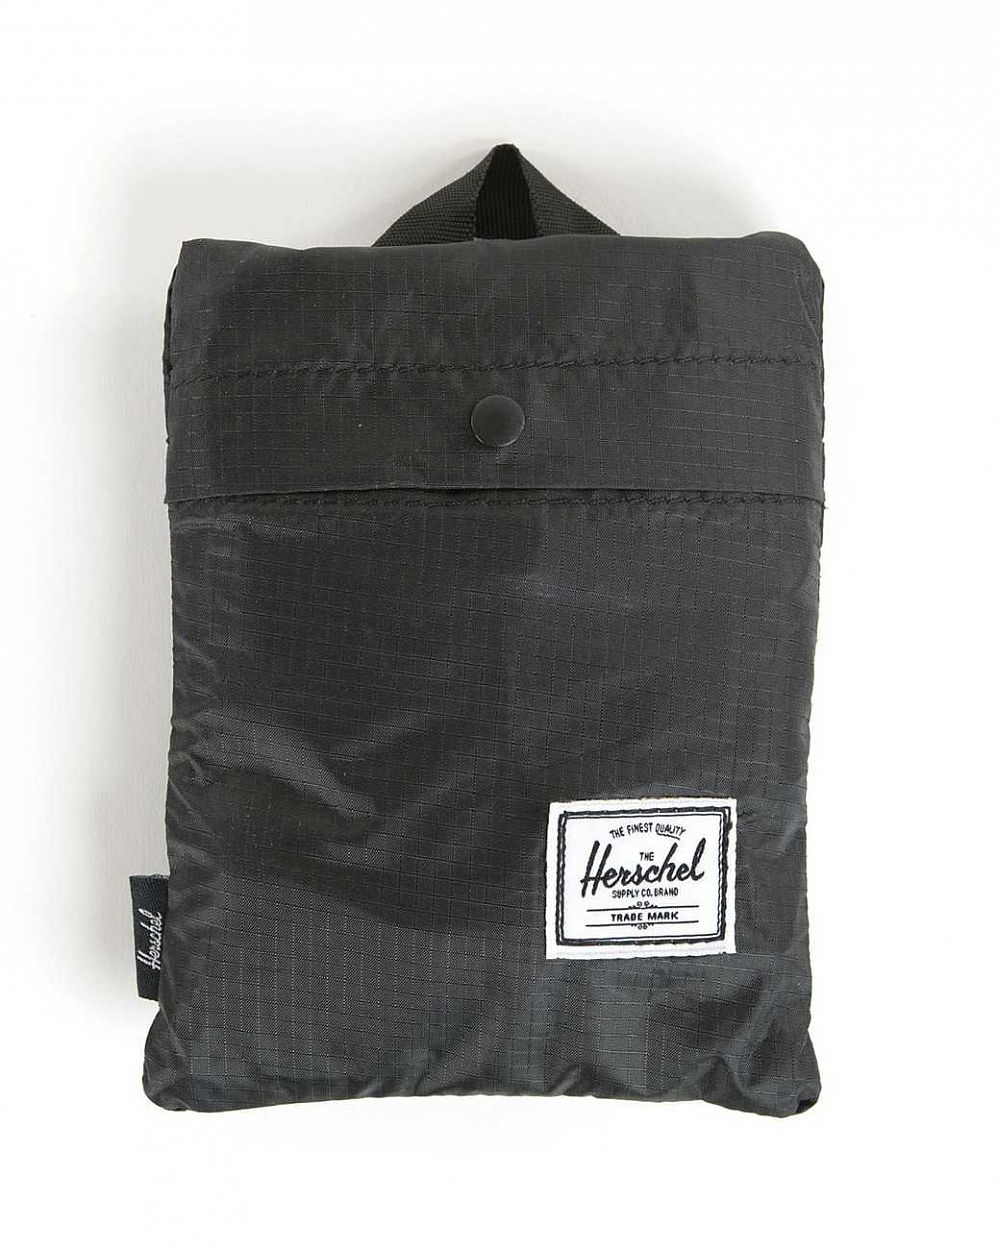 Сумка складная Herschel Packable Travel Tote Bag Black купить в интернете